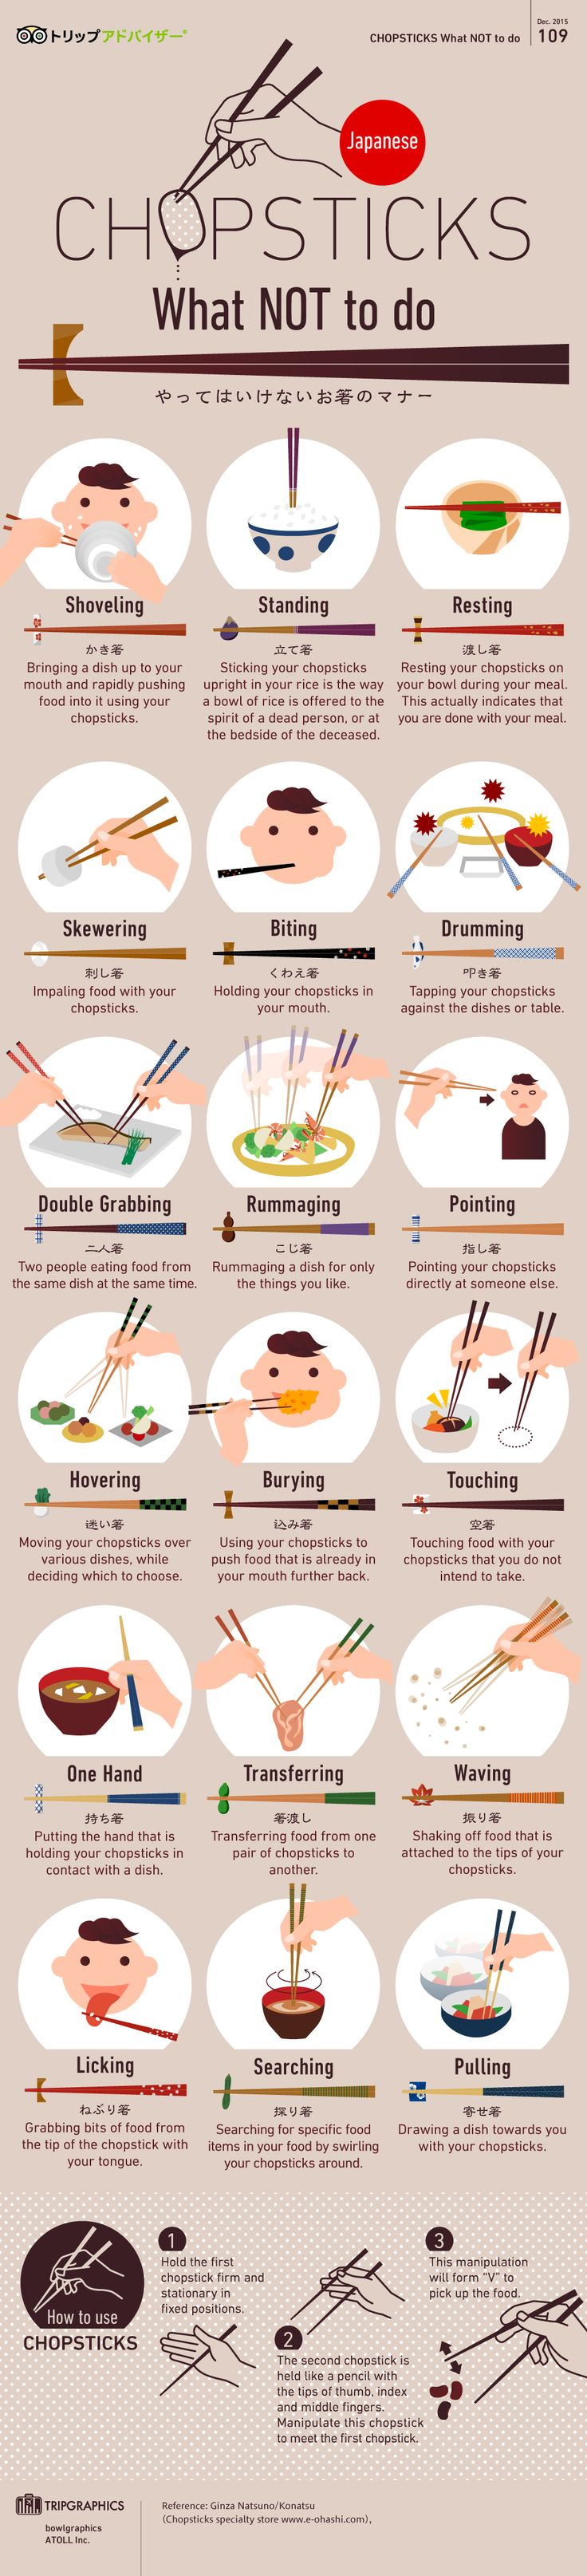 78 best images about clip art on pinterest hand washing clip art - Chopstick Etiquette Is No Joke Nobody Will Judge You If You Fumble A Bit